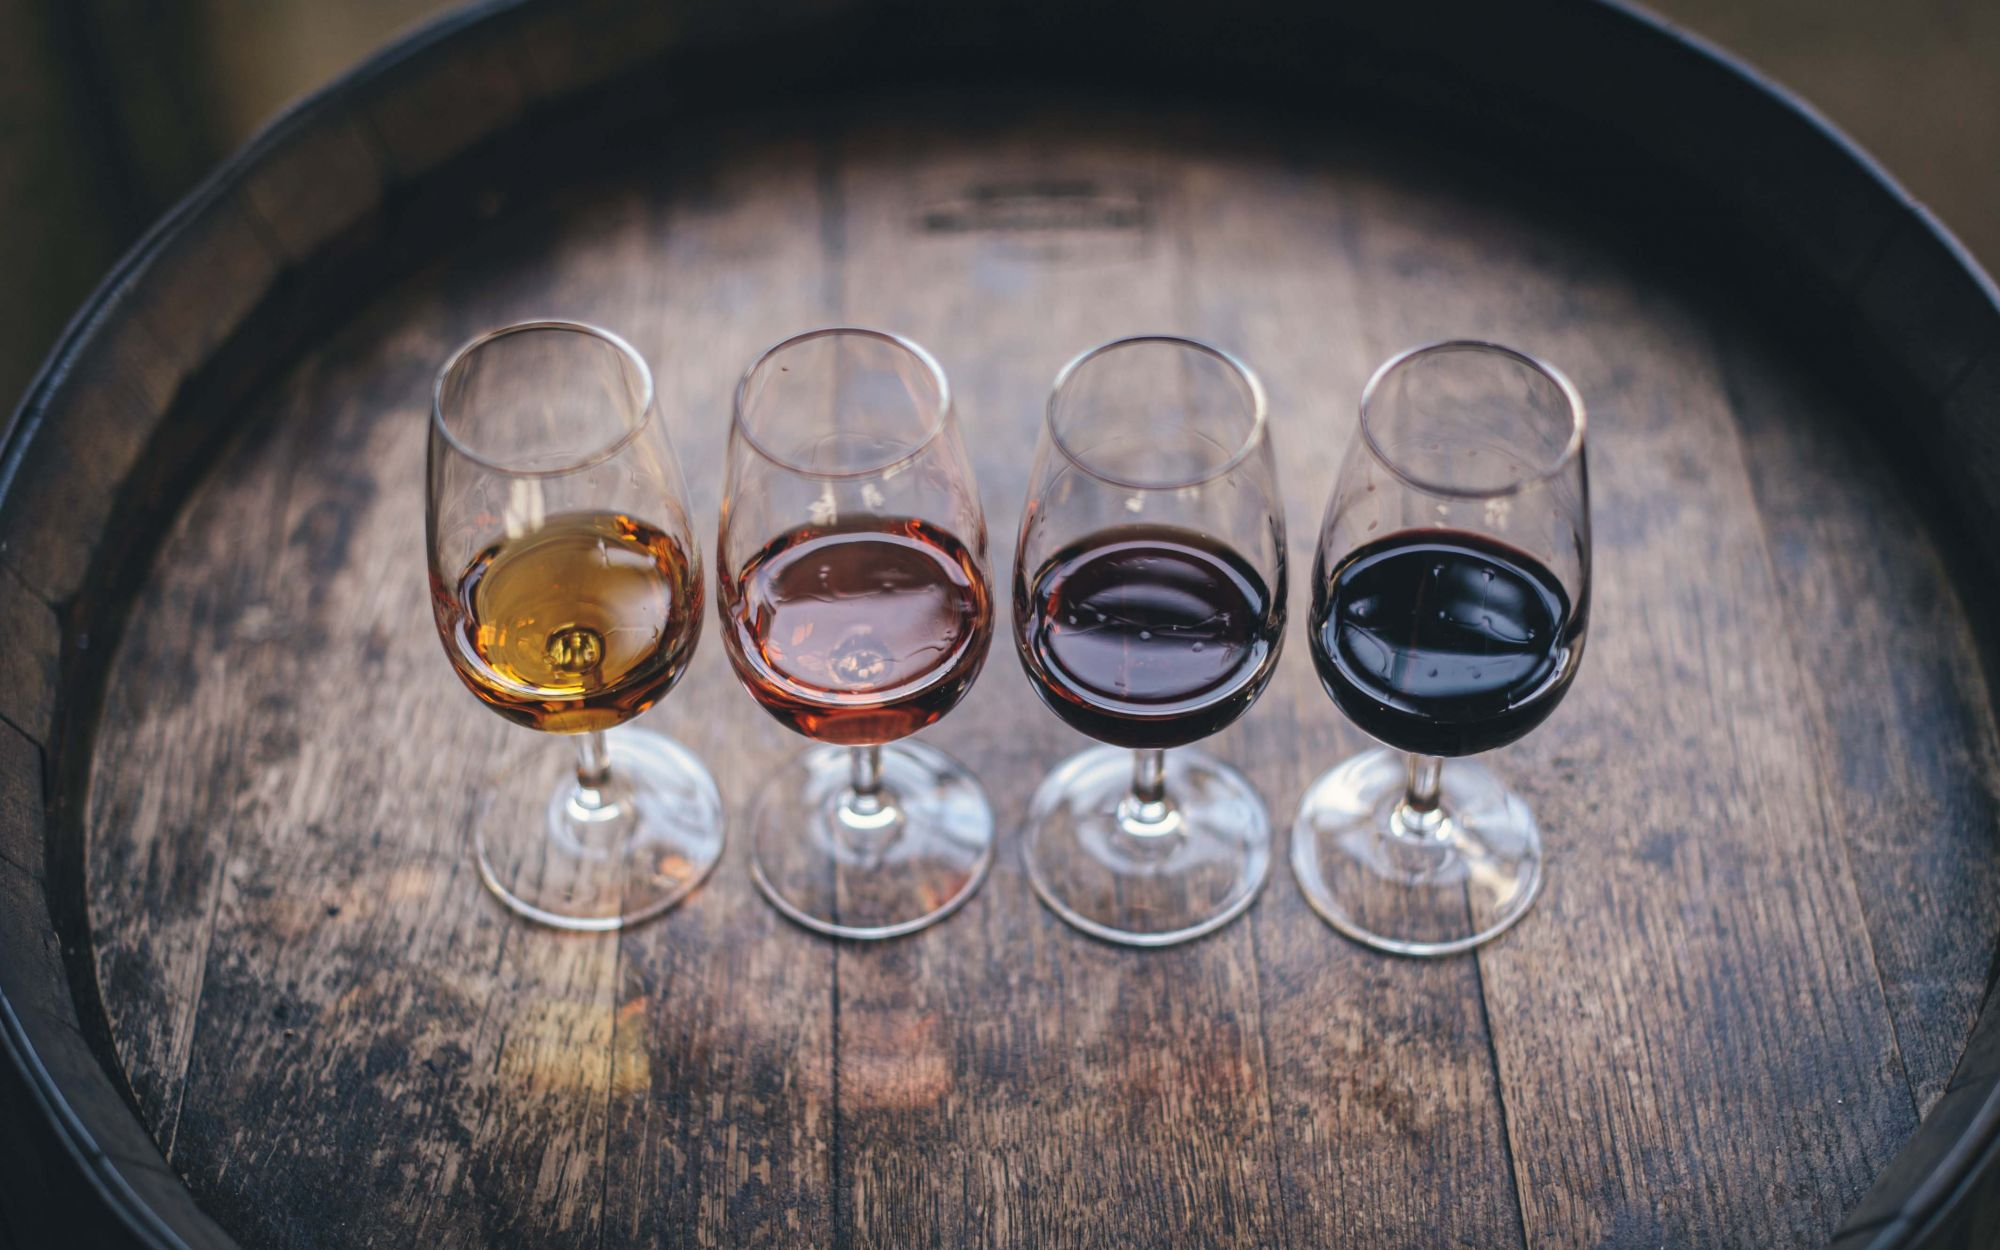 10 Low & No-Alcohol Wines To Enjoy Without The Hangover